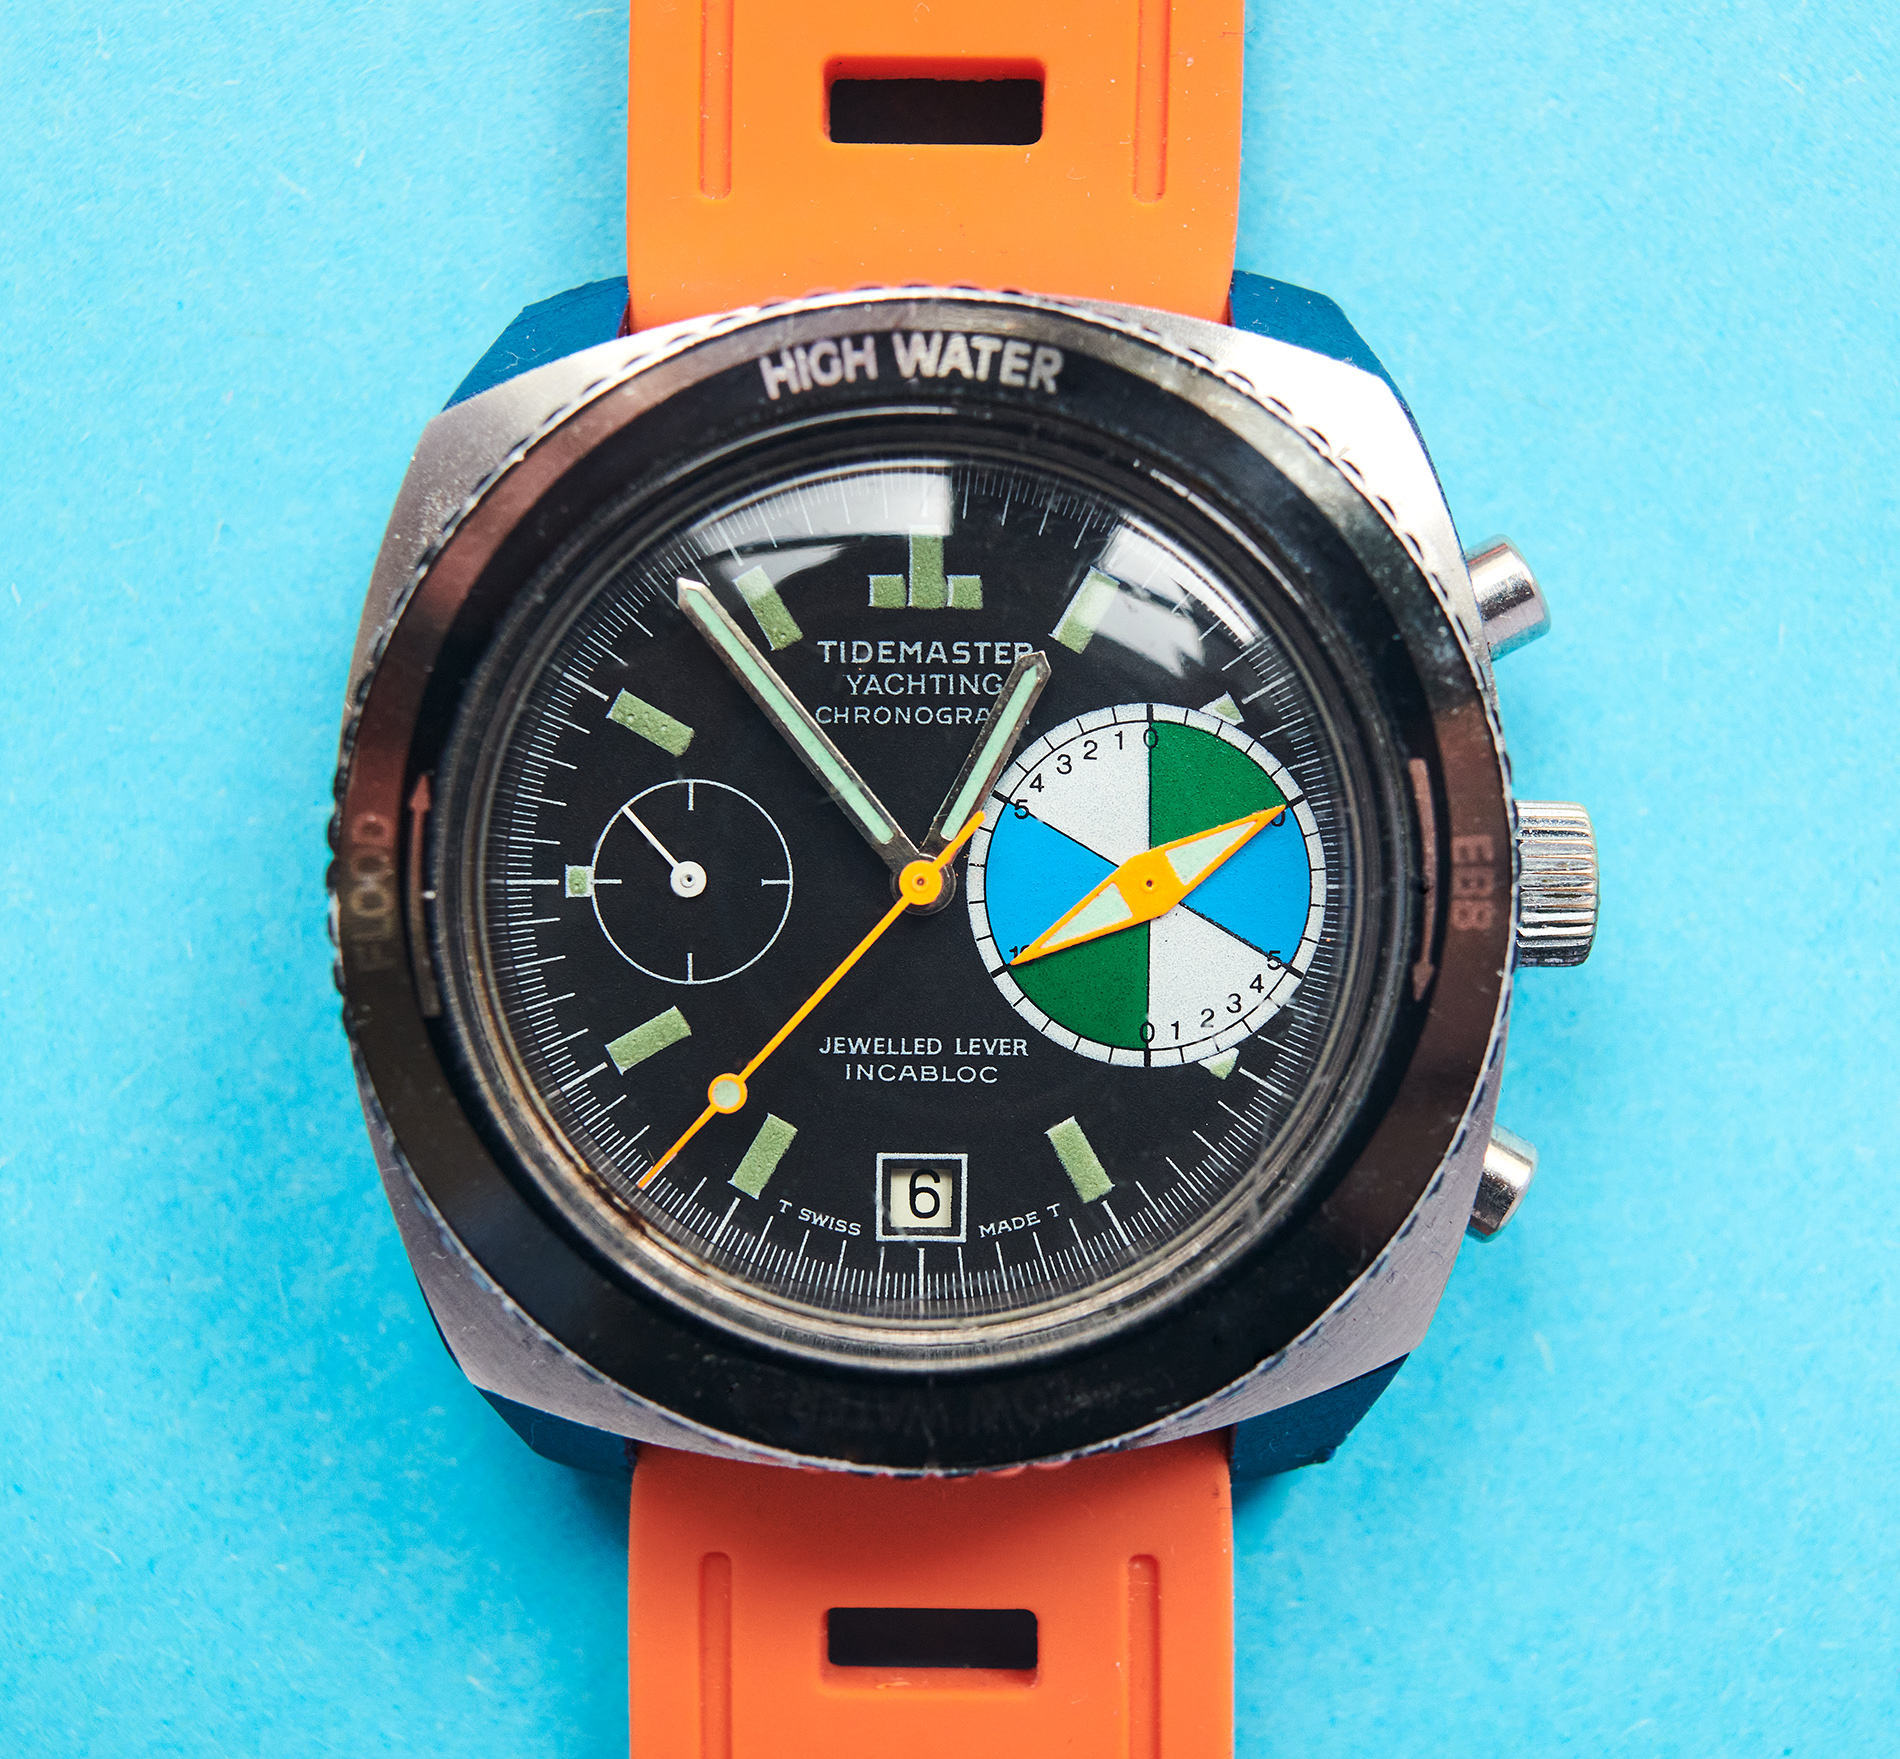 tide & yachting chronograph 1970s